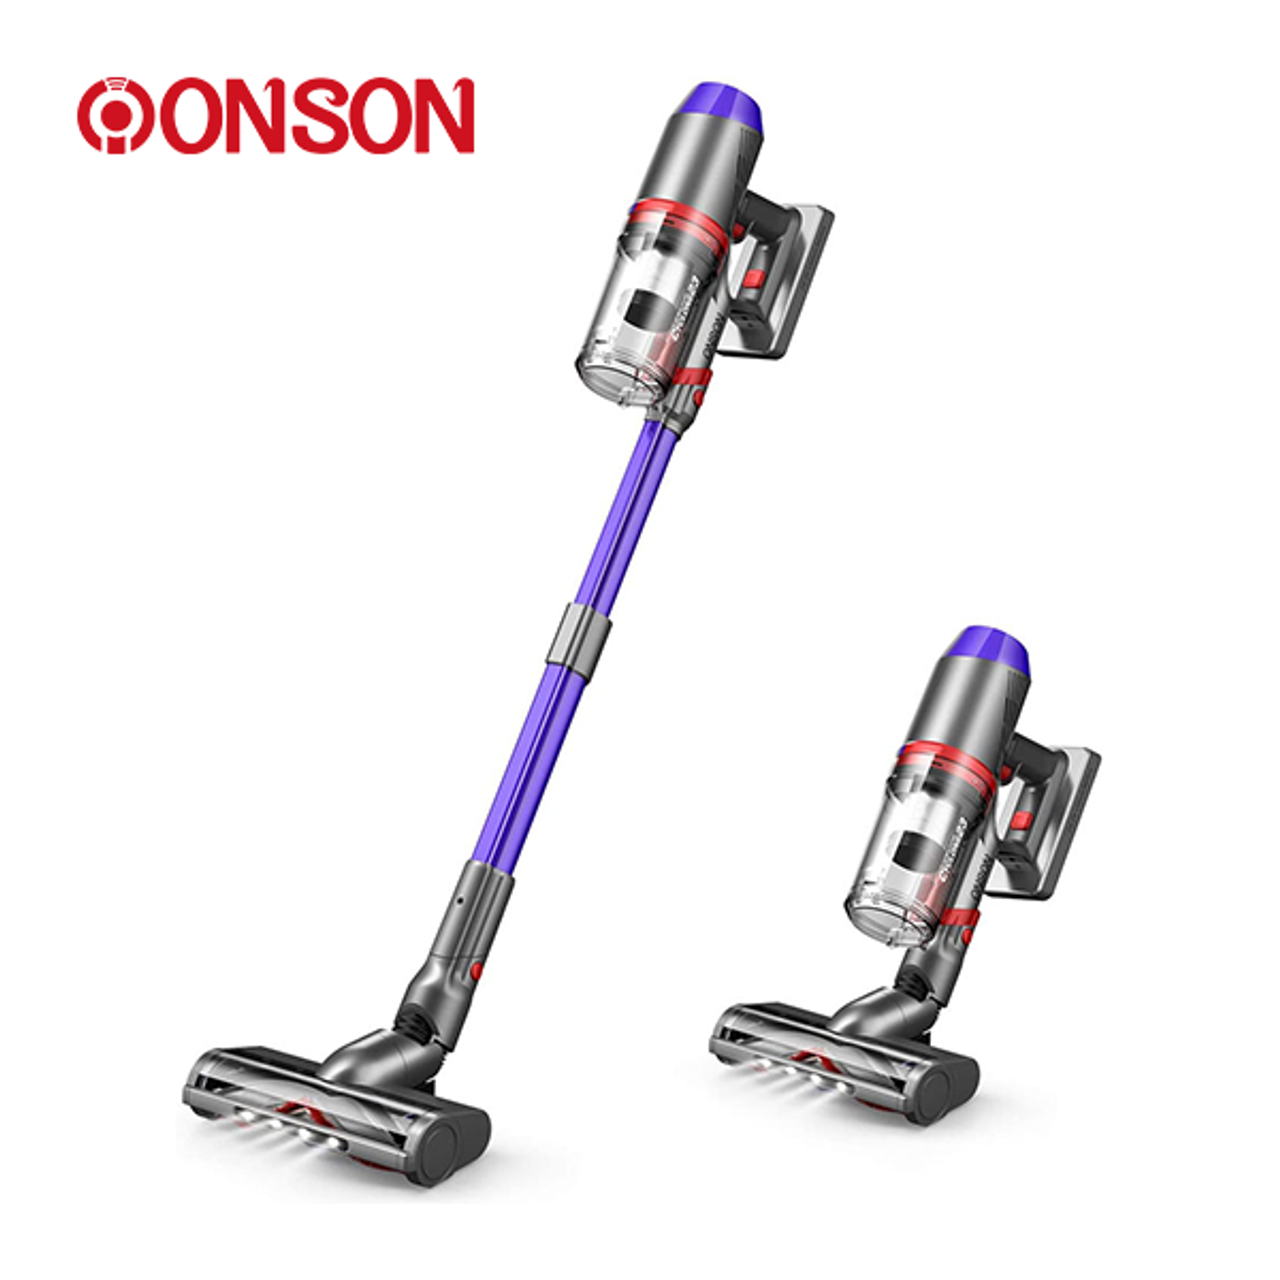 ONSON: Pro Cordless Stick Vacuum Cleaner with LED Roller Brush! 9.99 (REG 9.99) + Free Shipping at Until Gone!